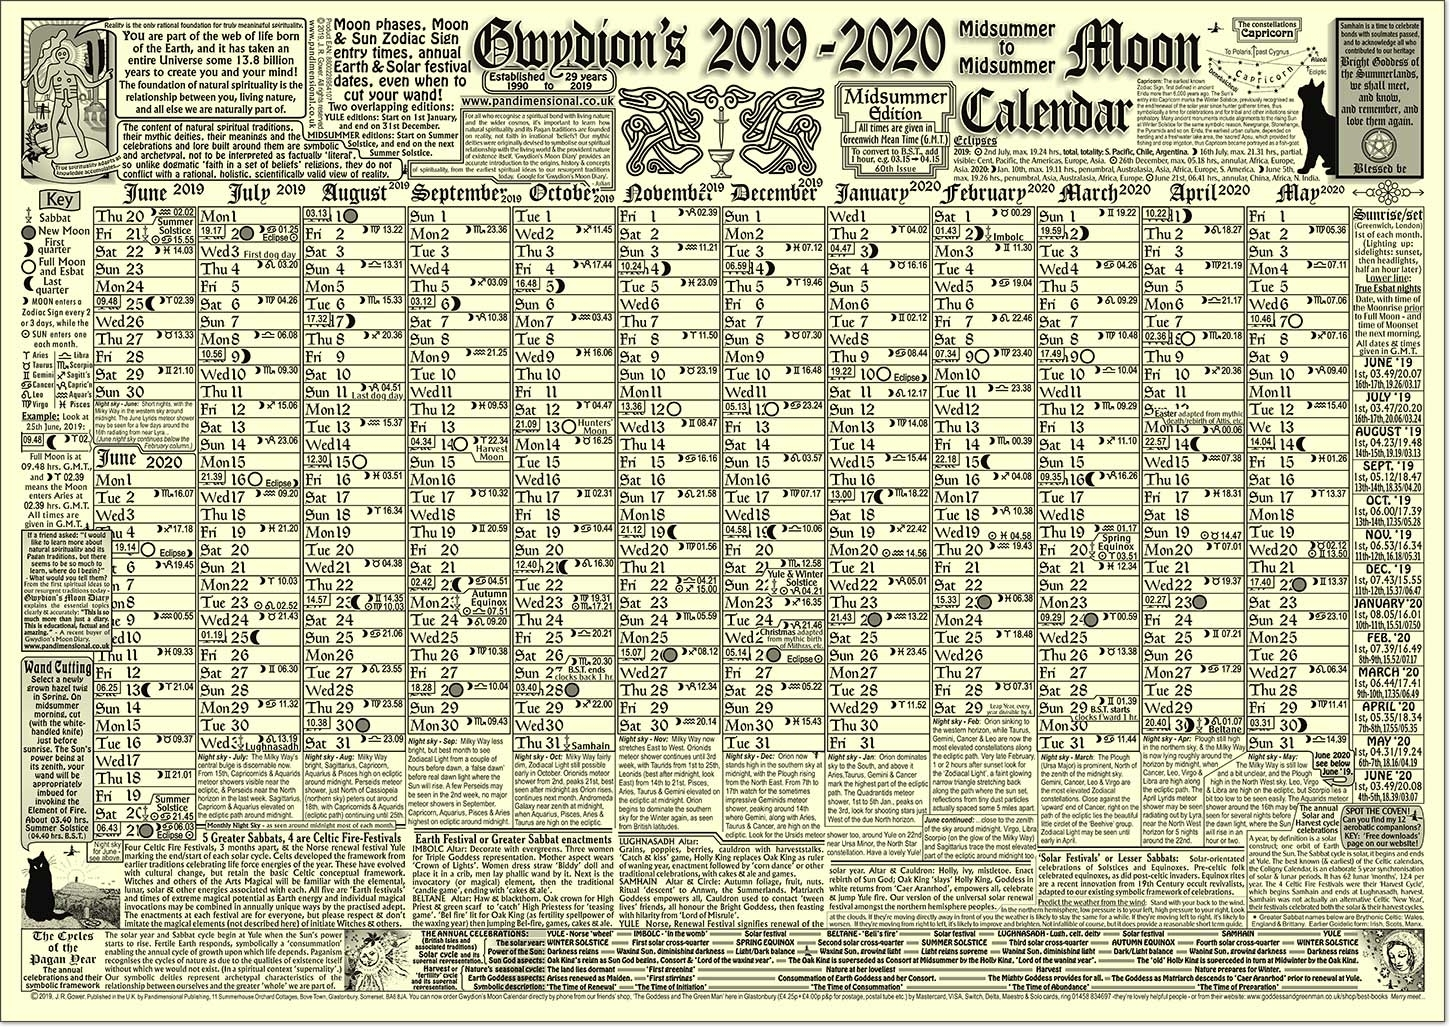 Gwydion's Moon Calendar - The New 2020 Edition. - Buy Online